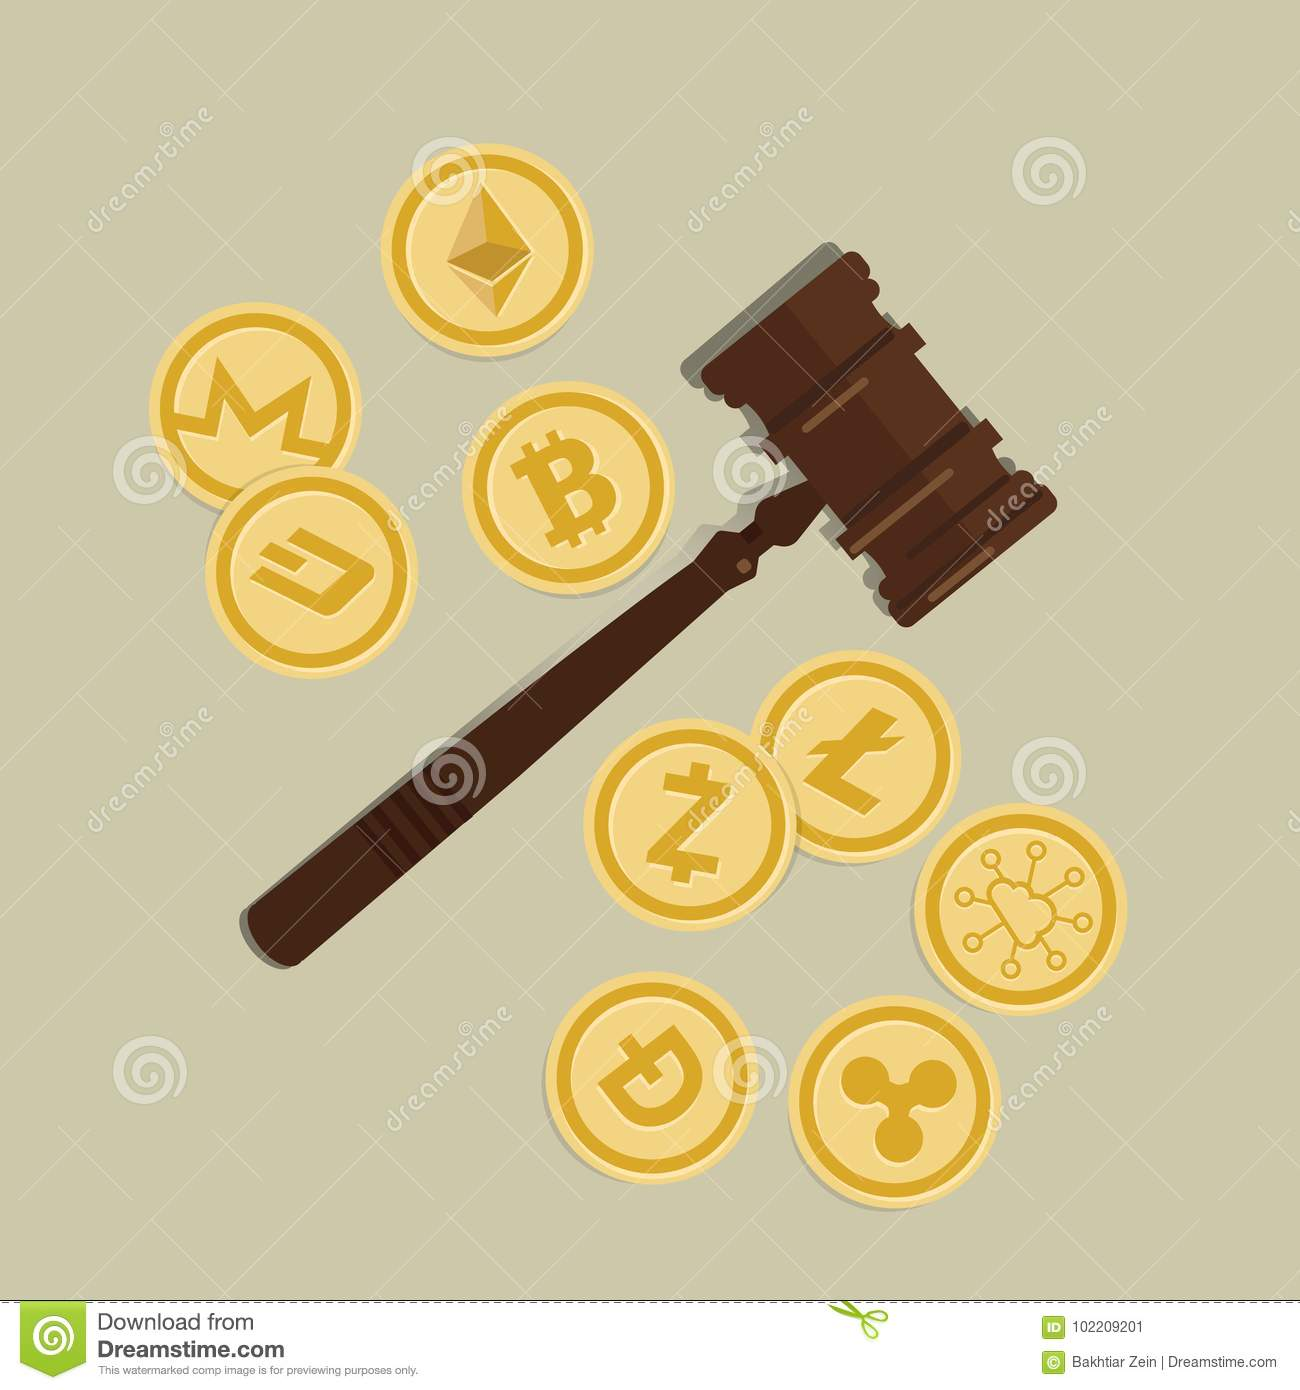 justice coin cryptocurrency